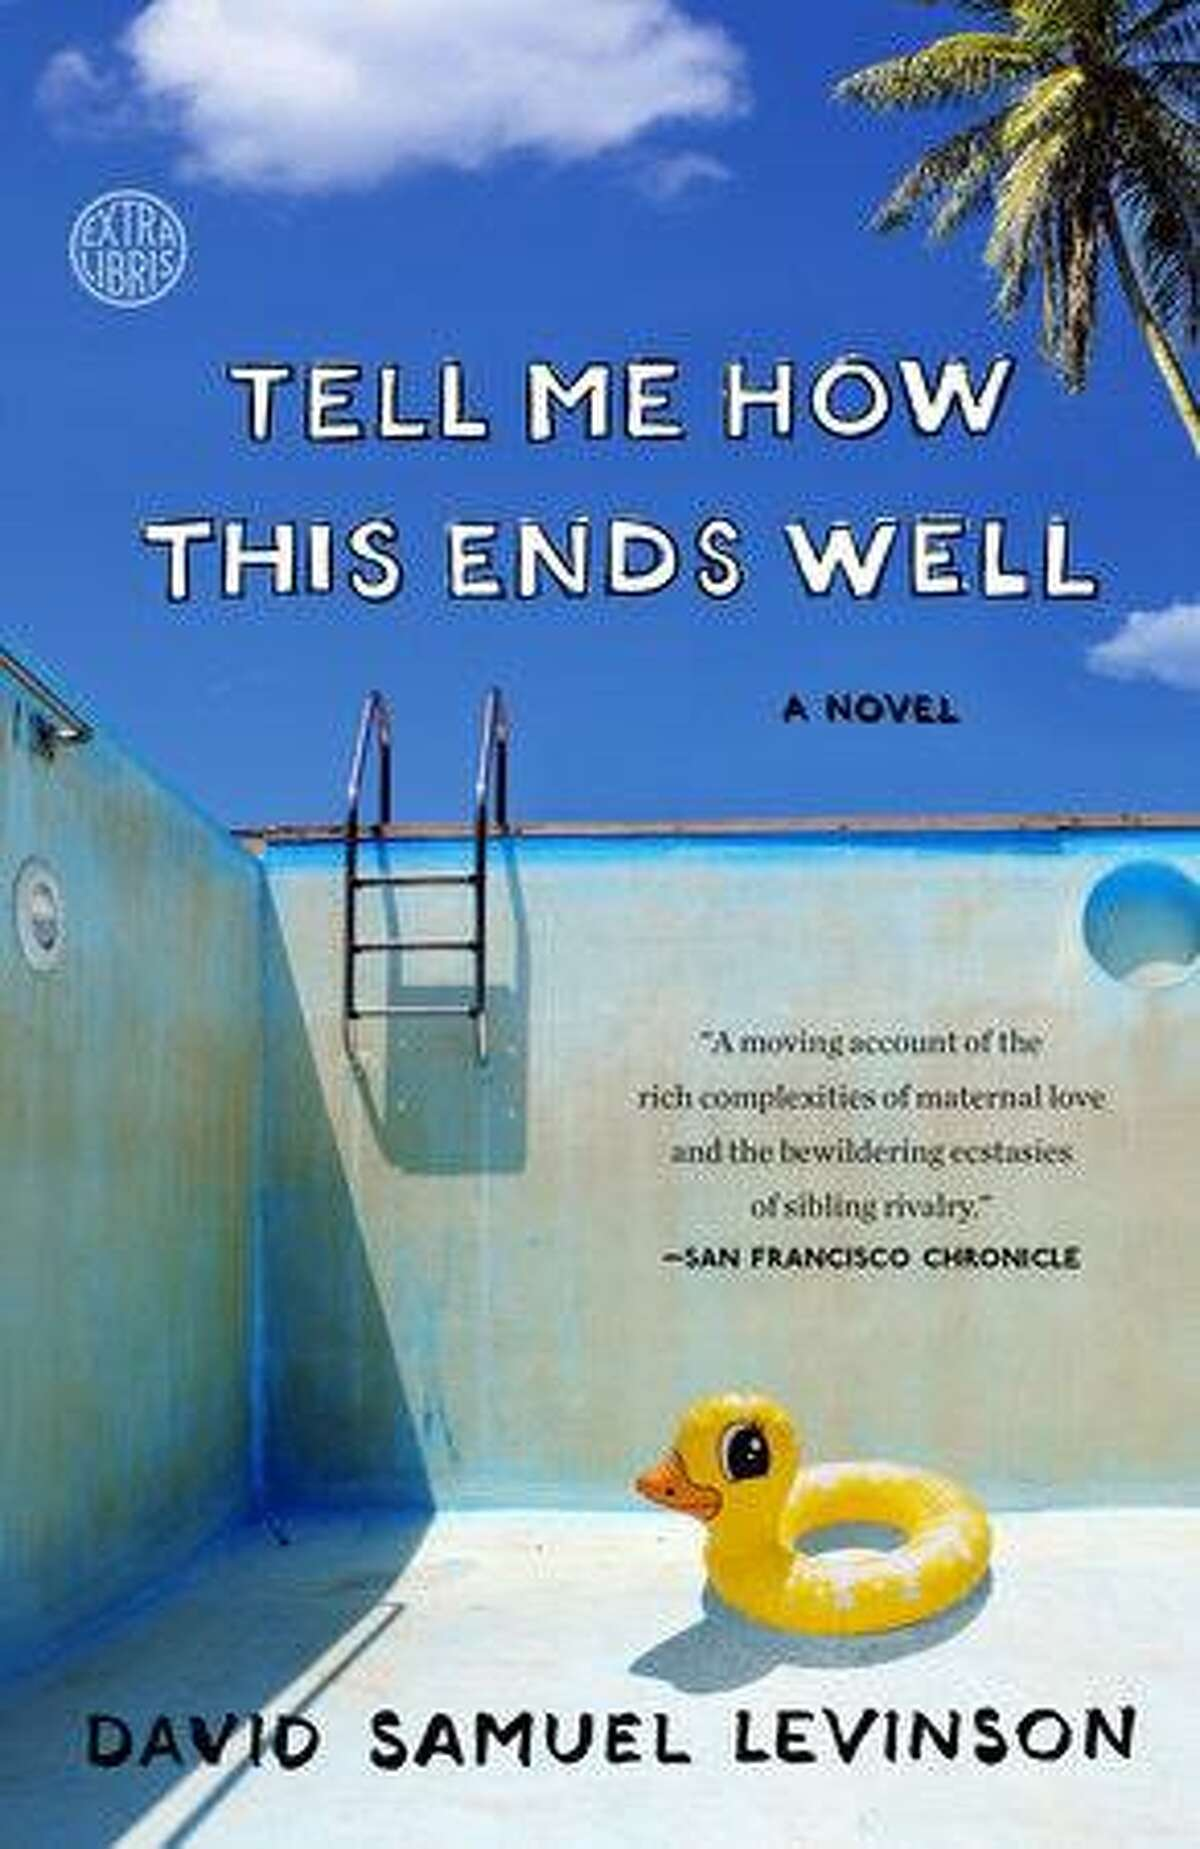 """David Samuel Levinson's 2017 novel """"Tell Me How This Ends Well"""" is a black comedy set in a dystopian future."""